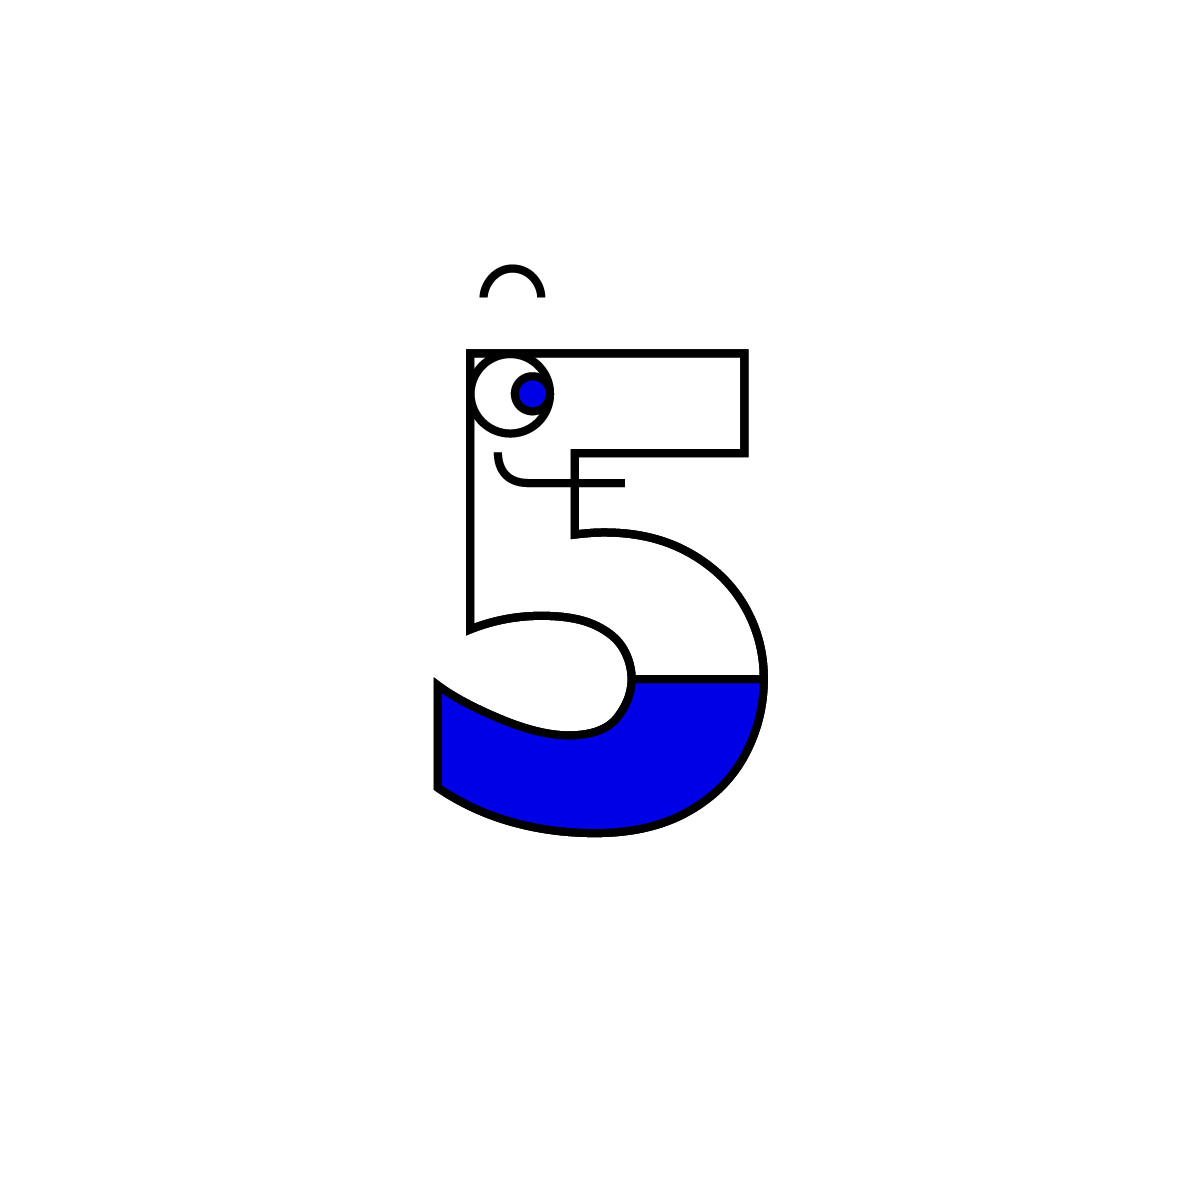 36_days_of_type_3-38.png